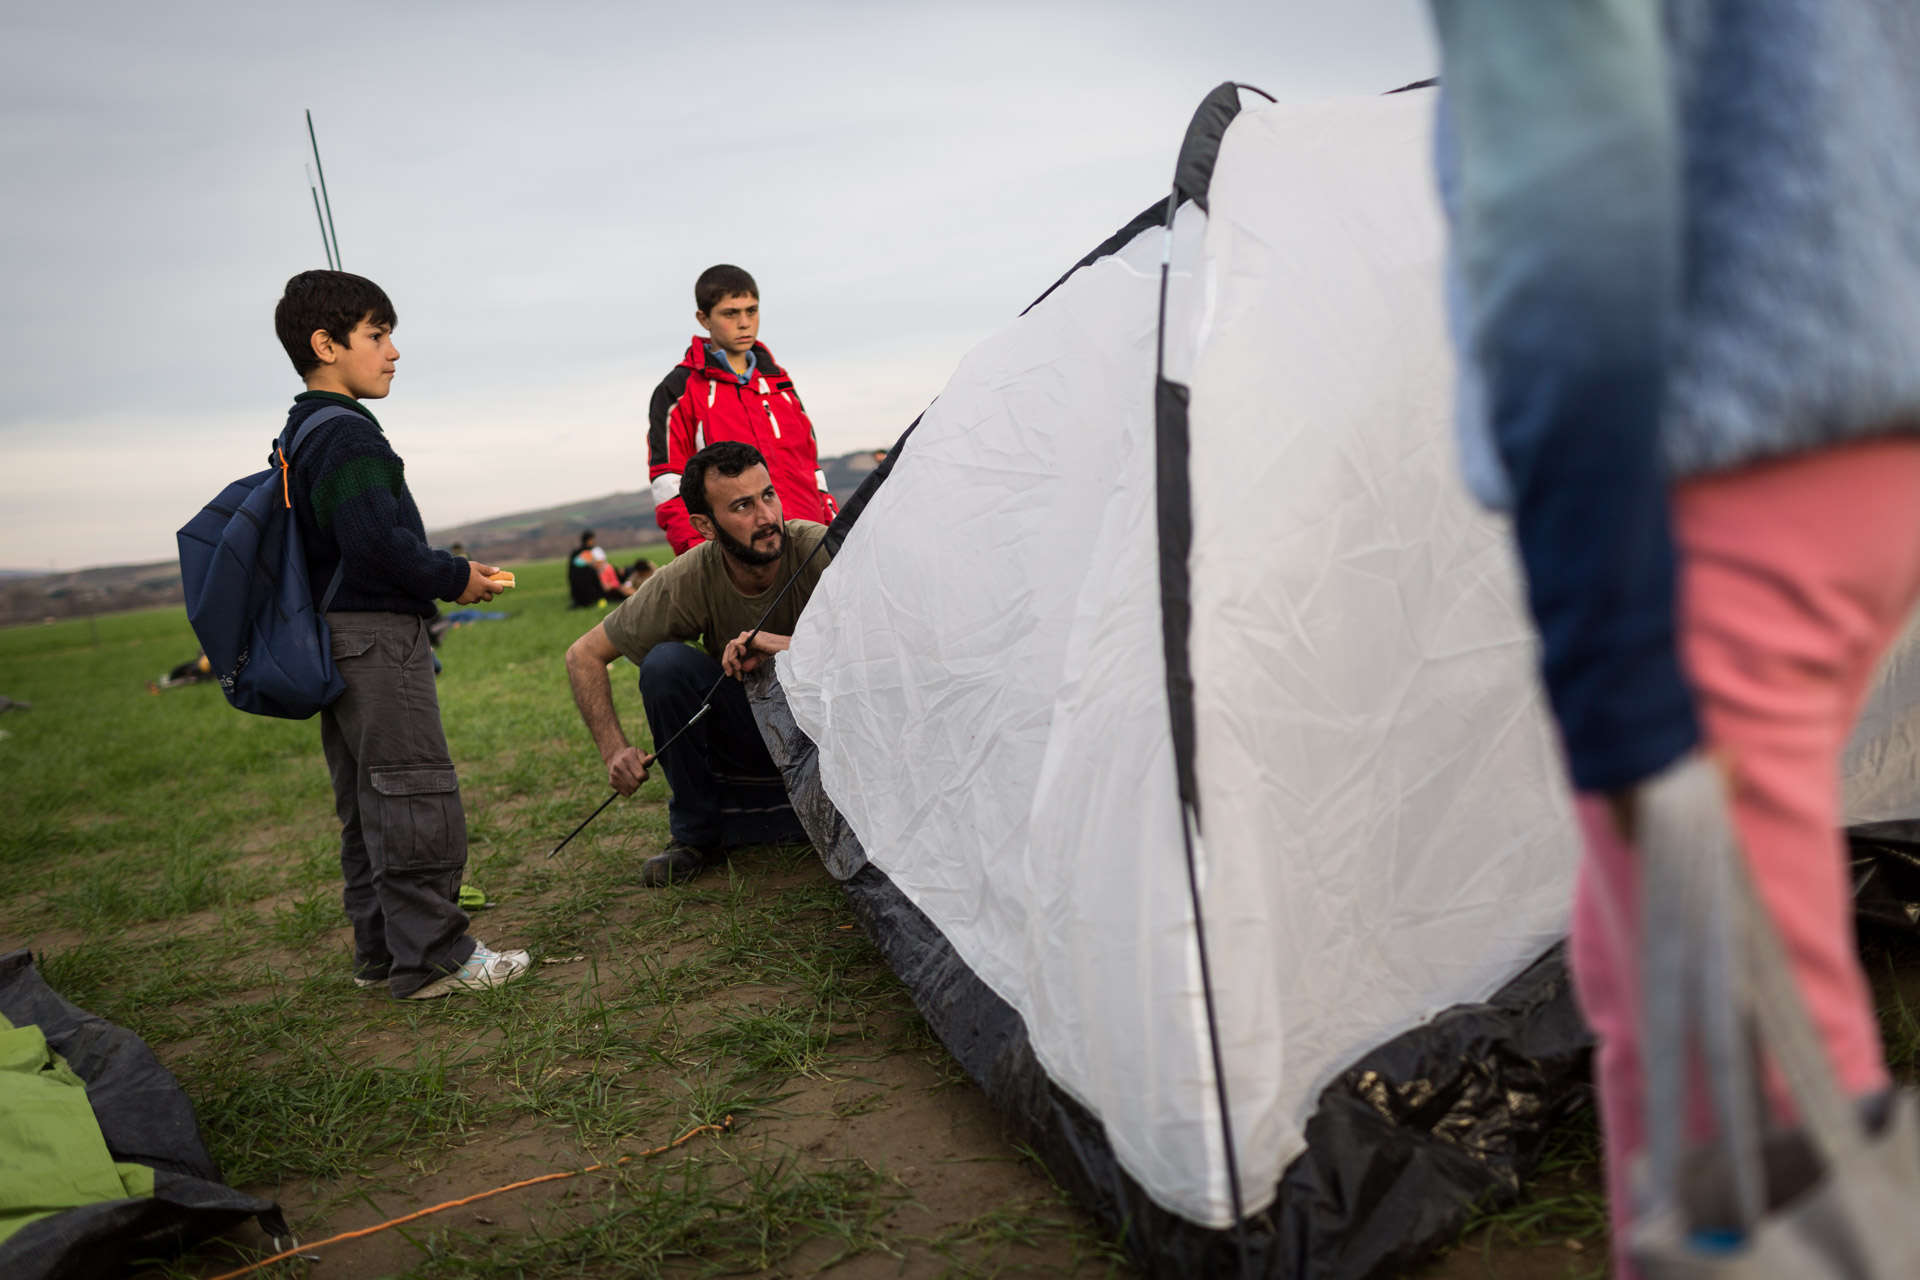 The family arrives in Idomeni. Basem sets up the two tents for the family: Nine people, plus me.